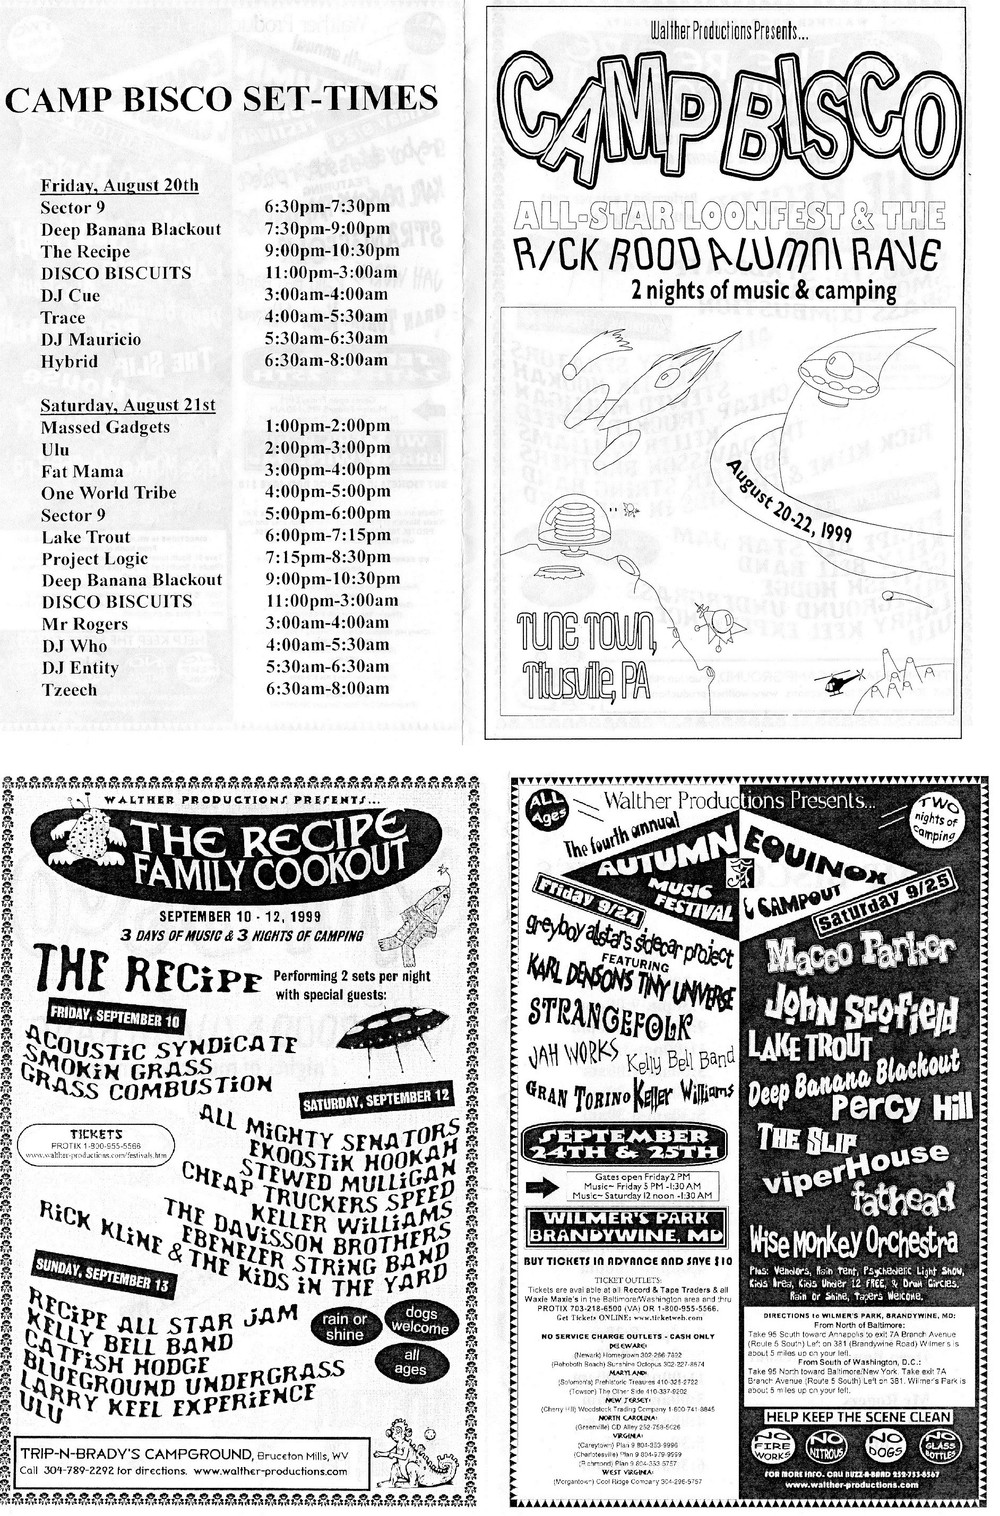 A Flyer for the first Camp Bisco that happened in Titusvile, Pennsylvania.